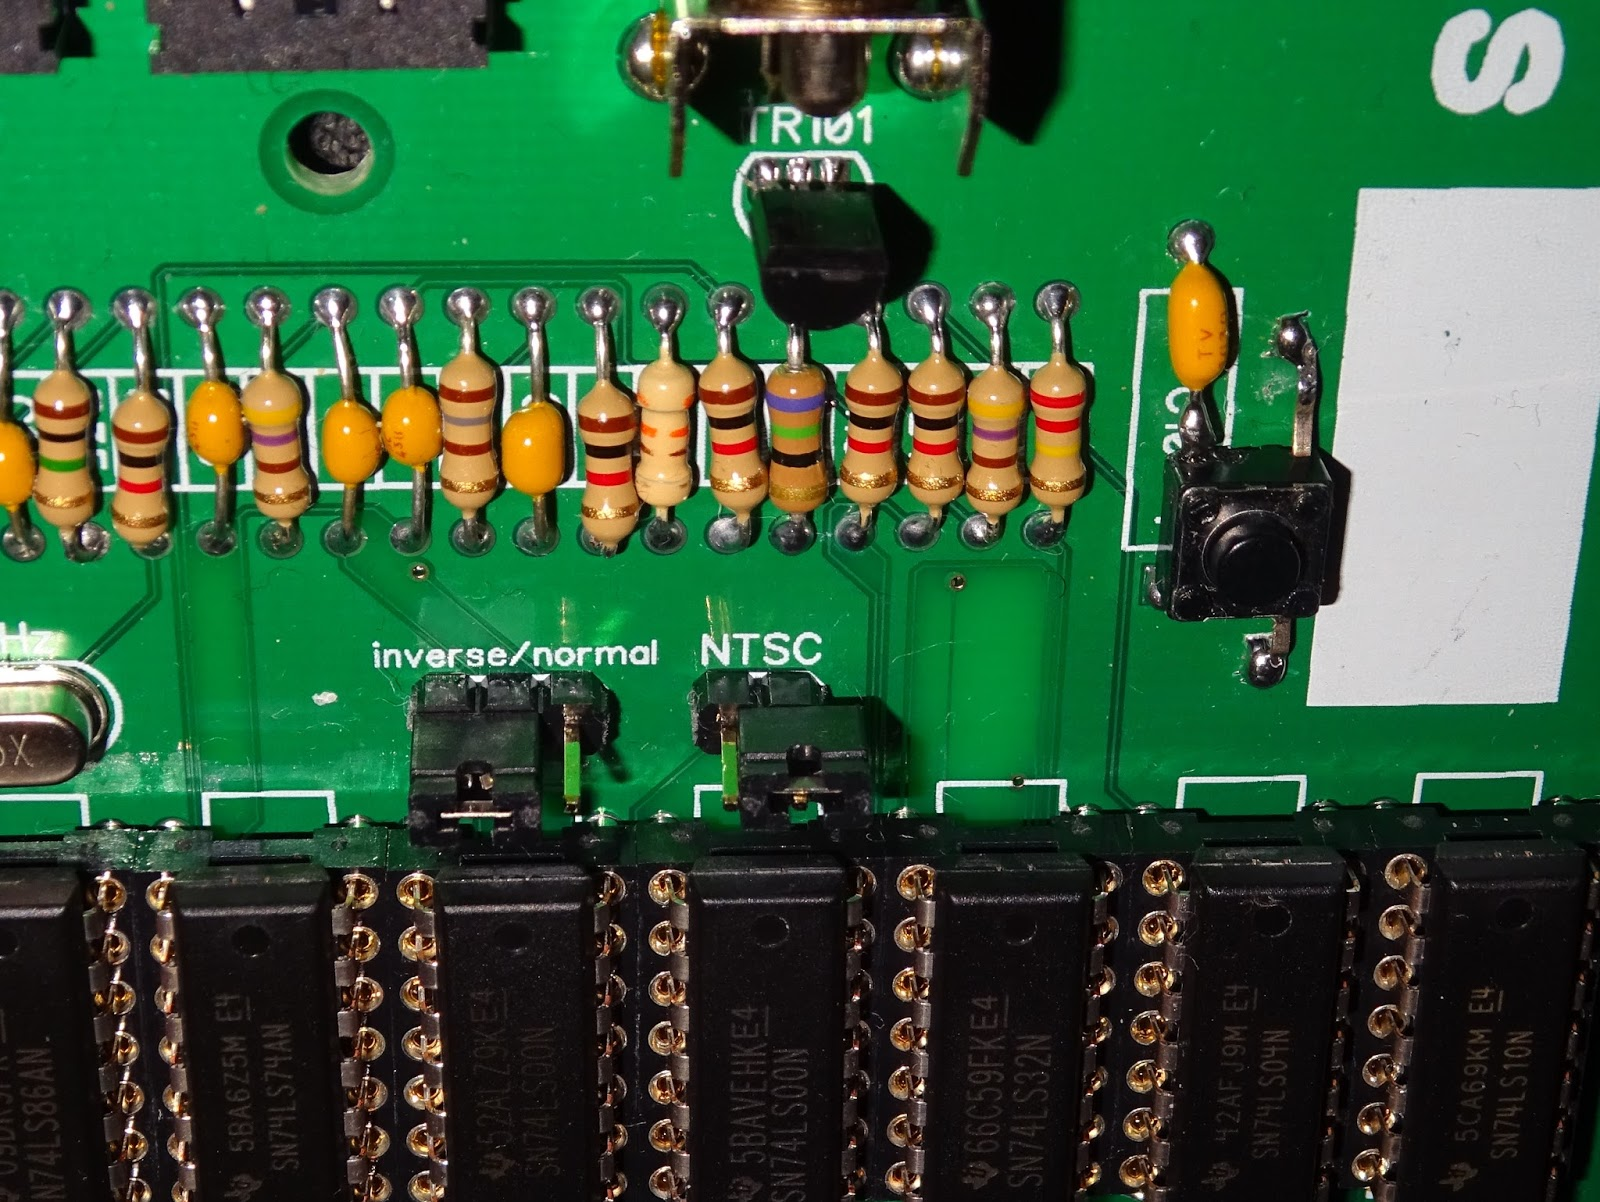 Tynemouth Software Minstrel Zx80 Clone Circuit Diagram There Is A Jumper To Select Pal Or Ntsc Mode On The Original Diode Was Fitted For And Resistor Zx81